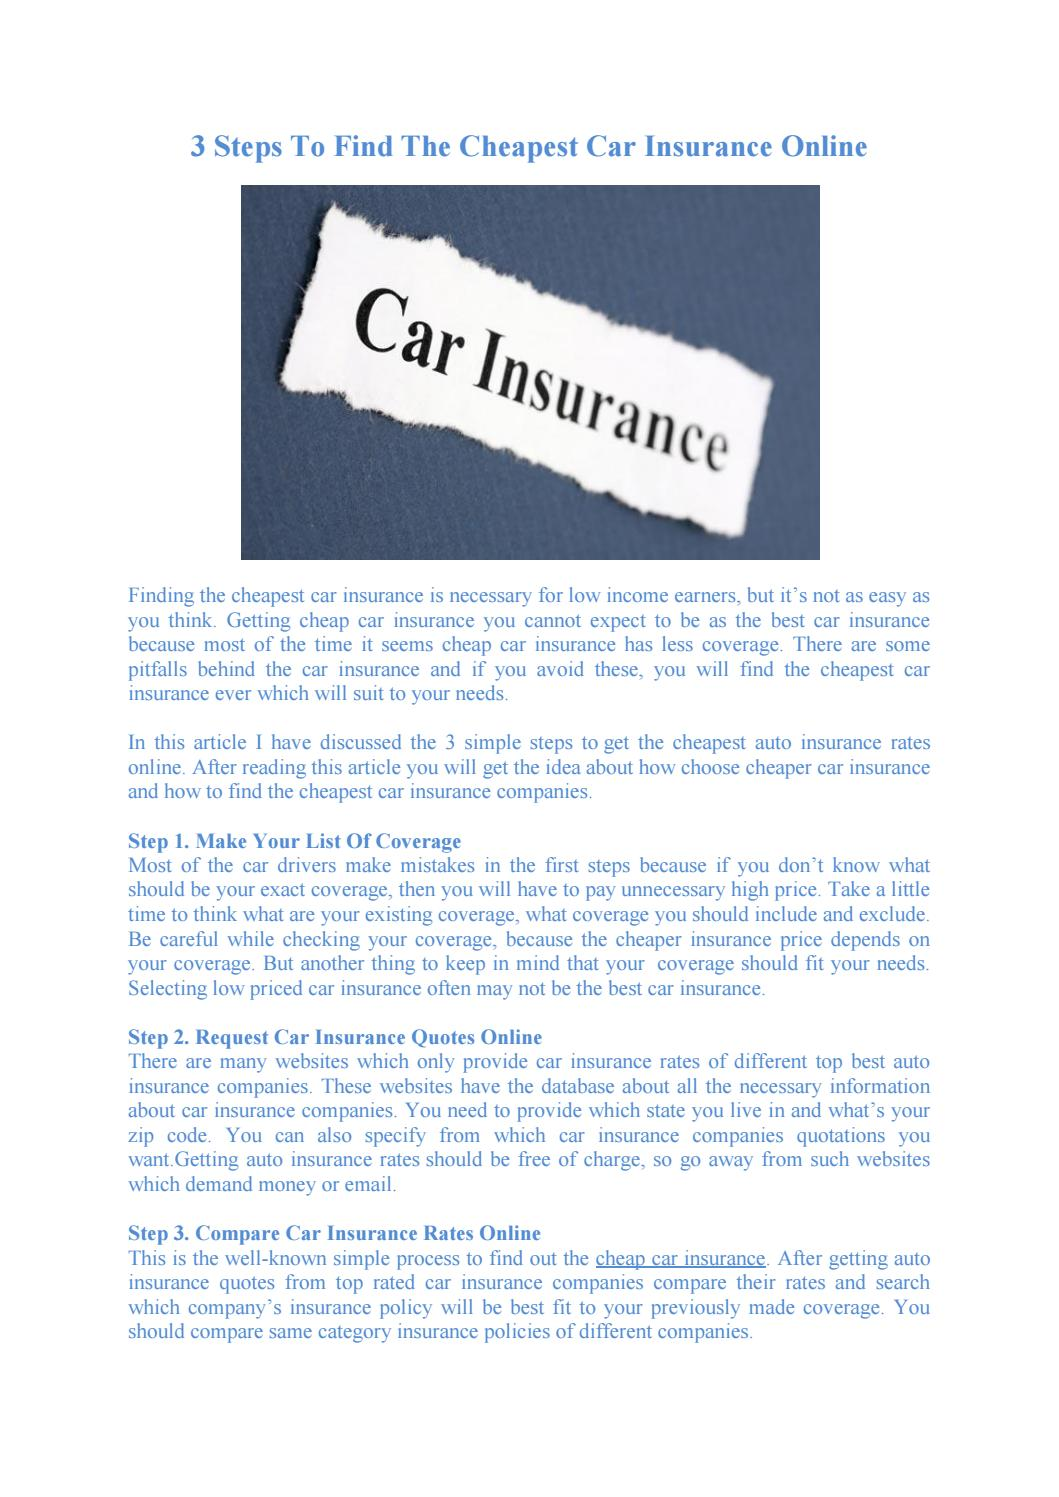 Get Cheap Insurance 3 Steps To Find The Cheapest Car Insurance Online By Sanjay Issuu